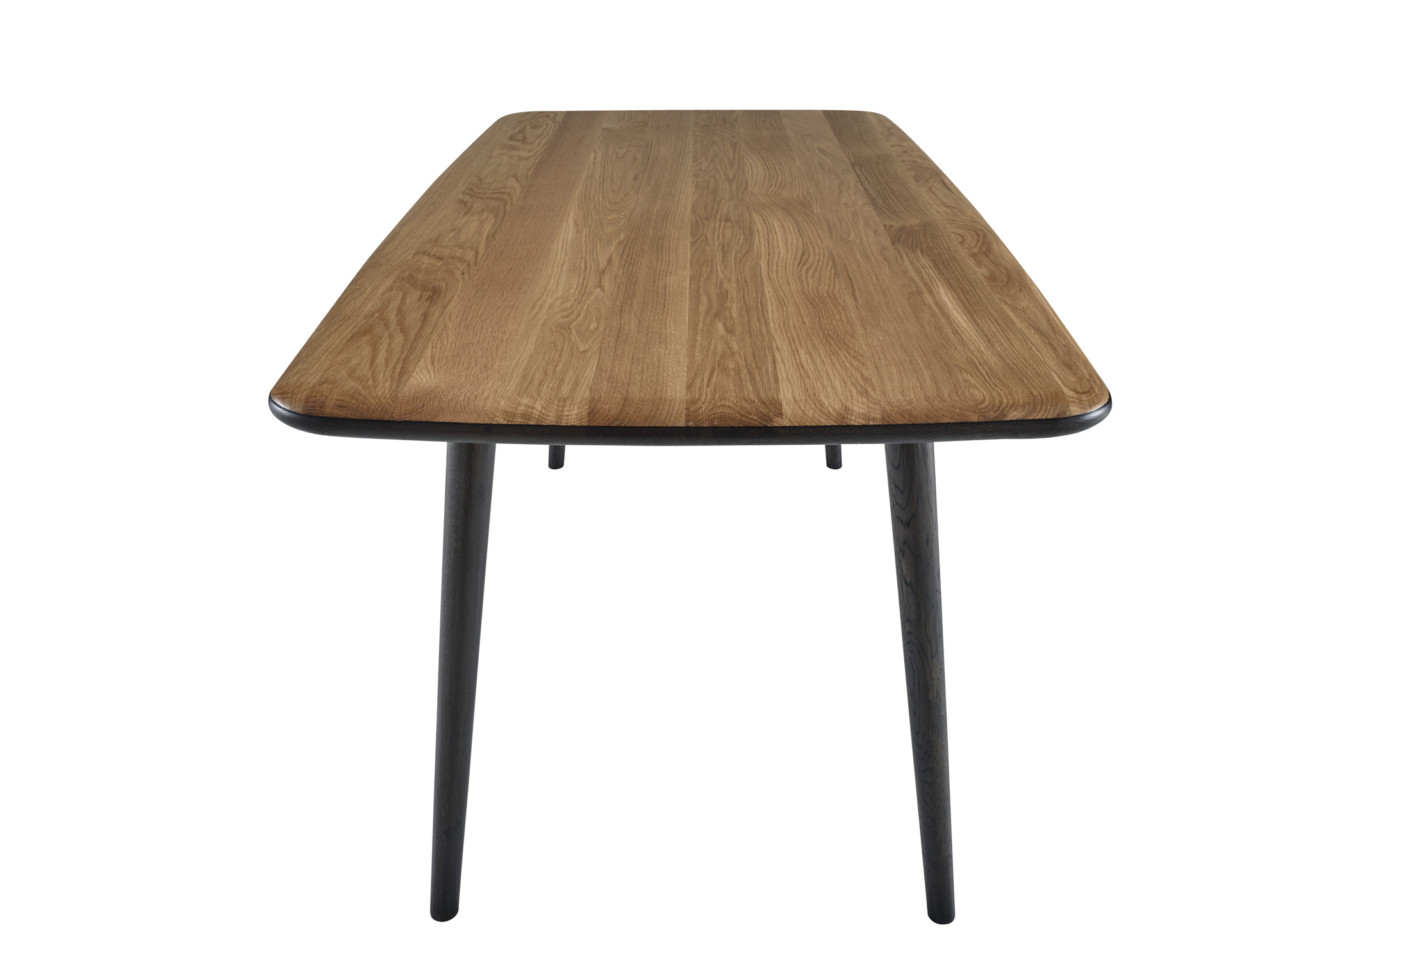 Ligne Roset Dining Table Dining Table Extensia Dining  : lady carlotta dining table 3 from honansantiques.com size 1410 x 971 jpeg 86kB